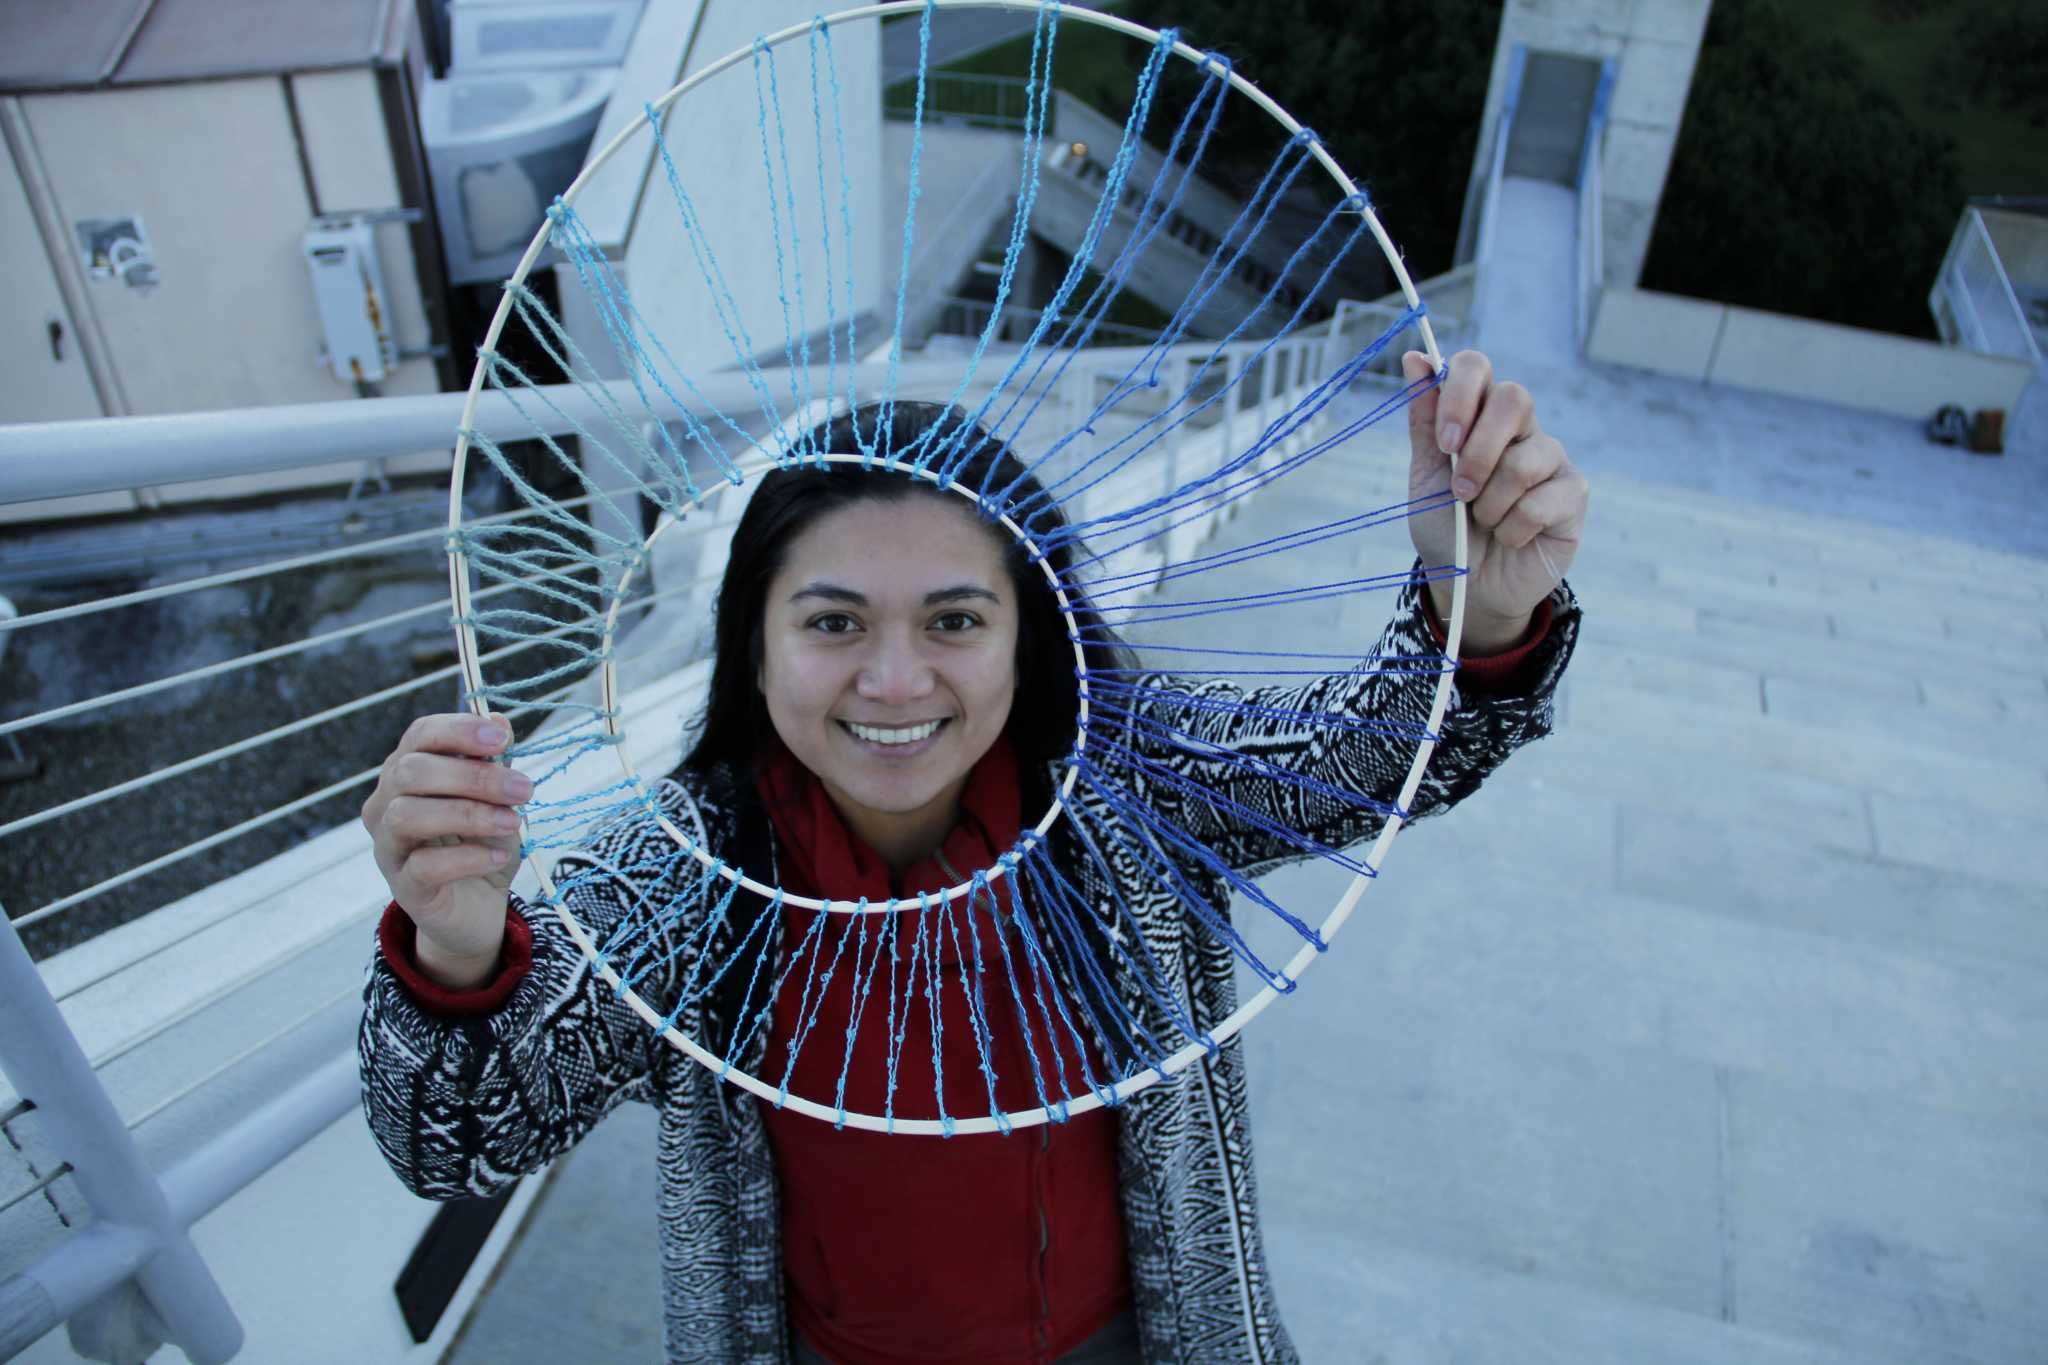 SF State alumna Mona Marcos poses with a piece from the upcoming